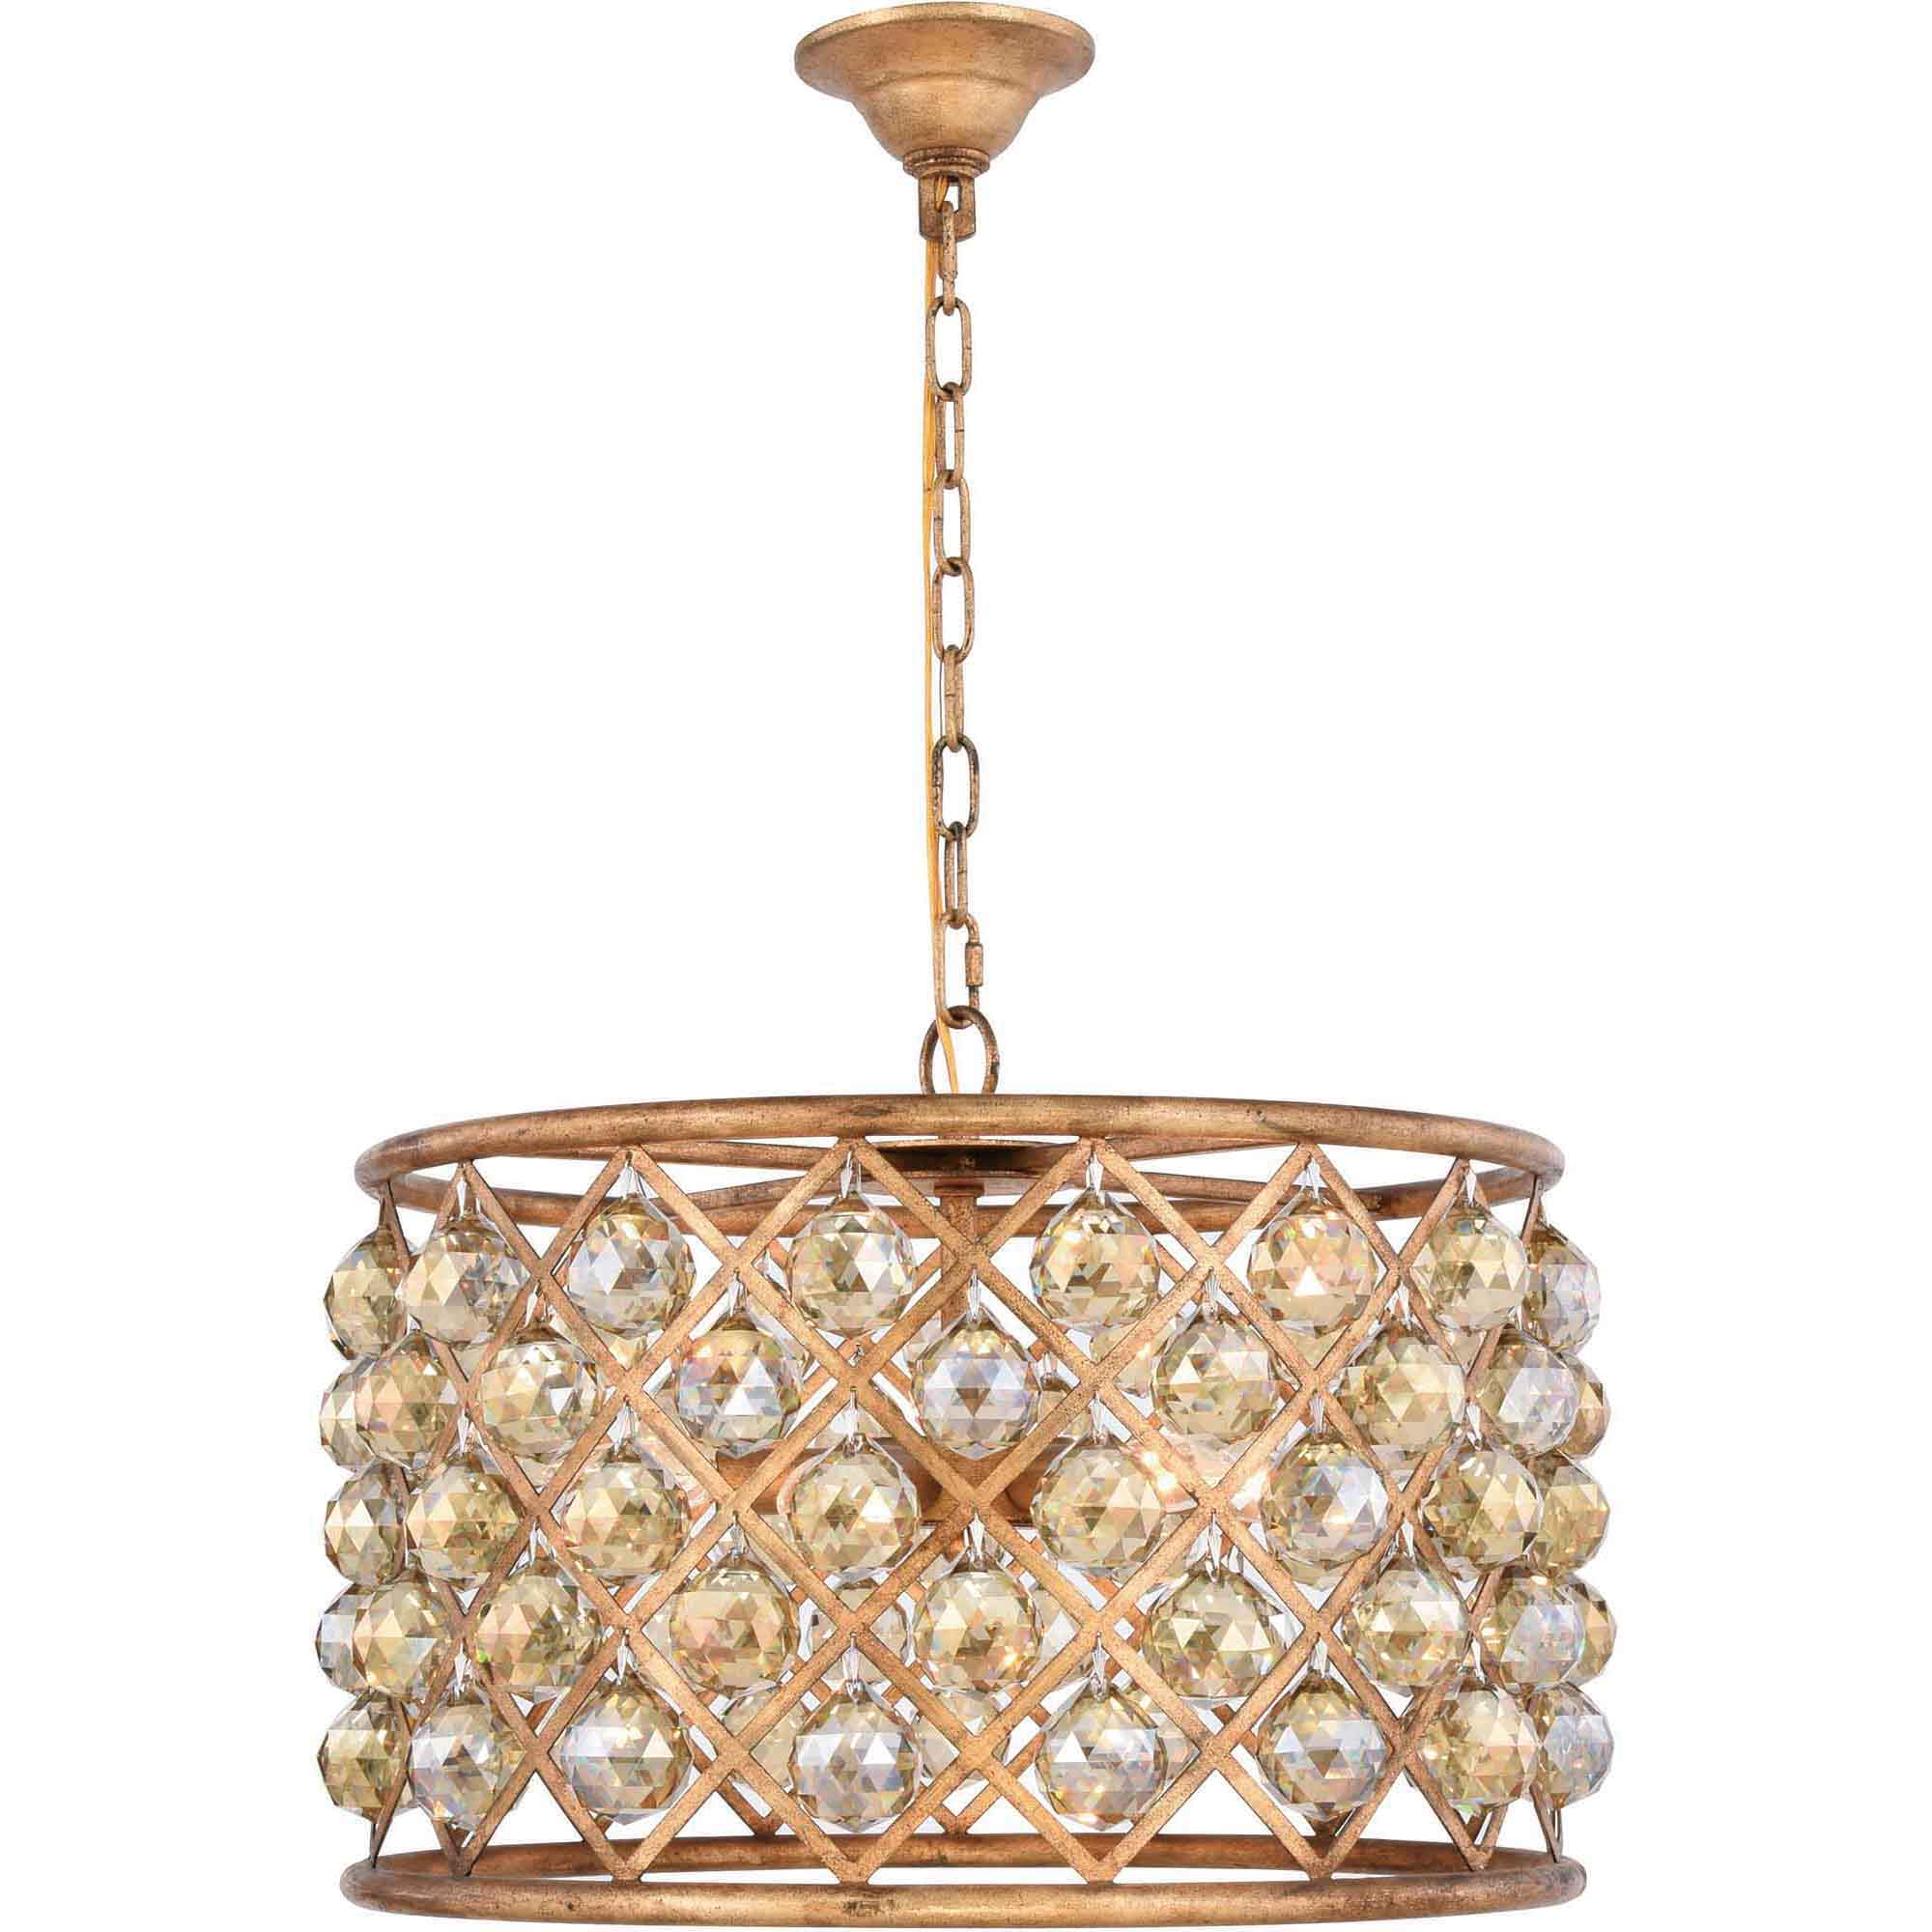 "Madison Collection Pendant Lamp D:20"" H:13"" Lt:6 Golden Iron Finish Royal Cut Golden Teak (Smoky)"